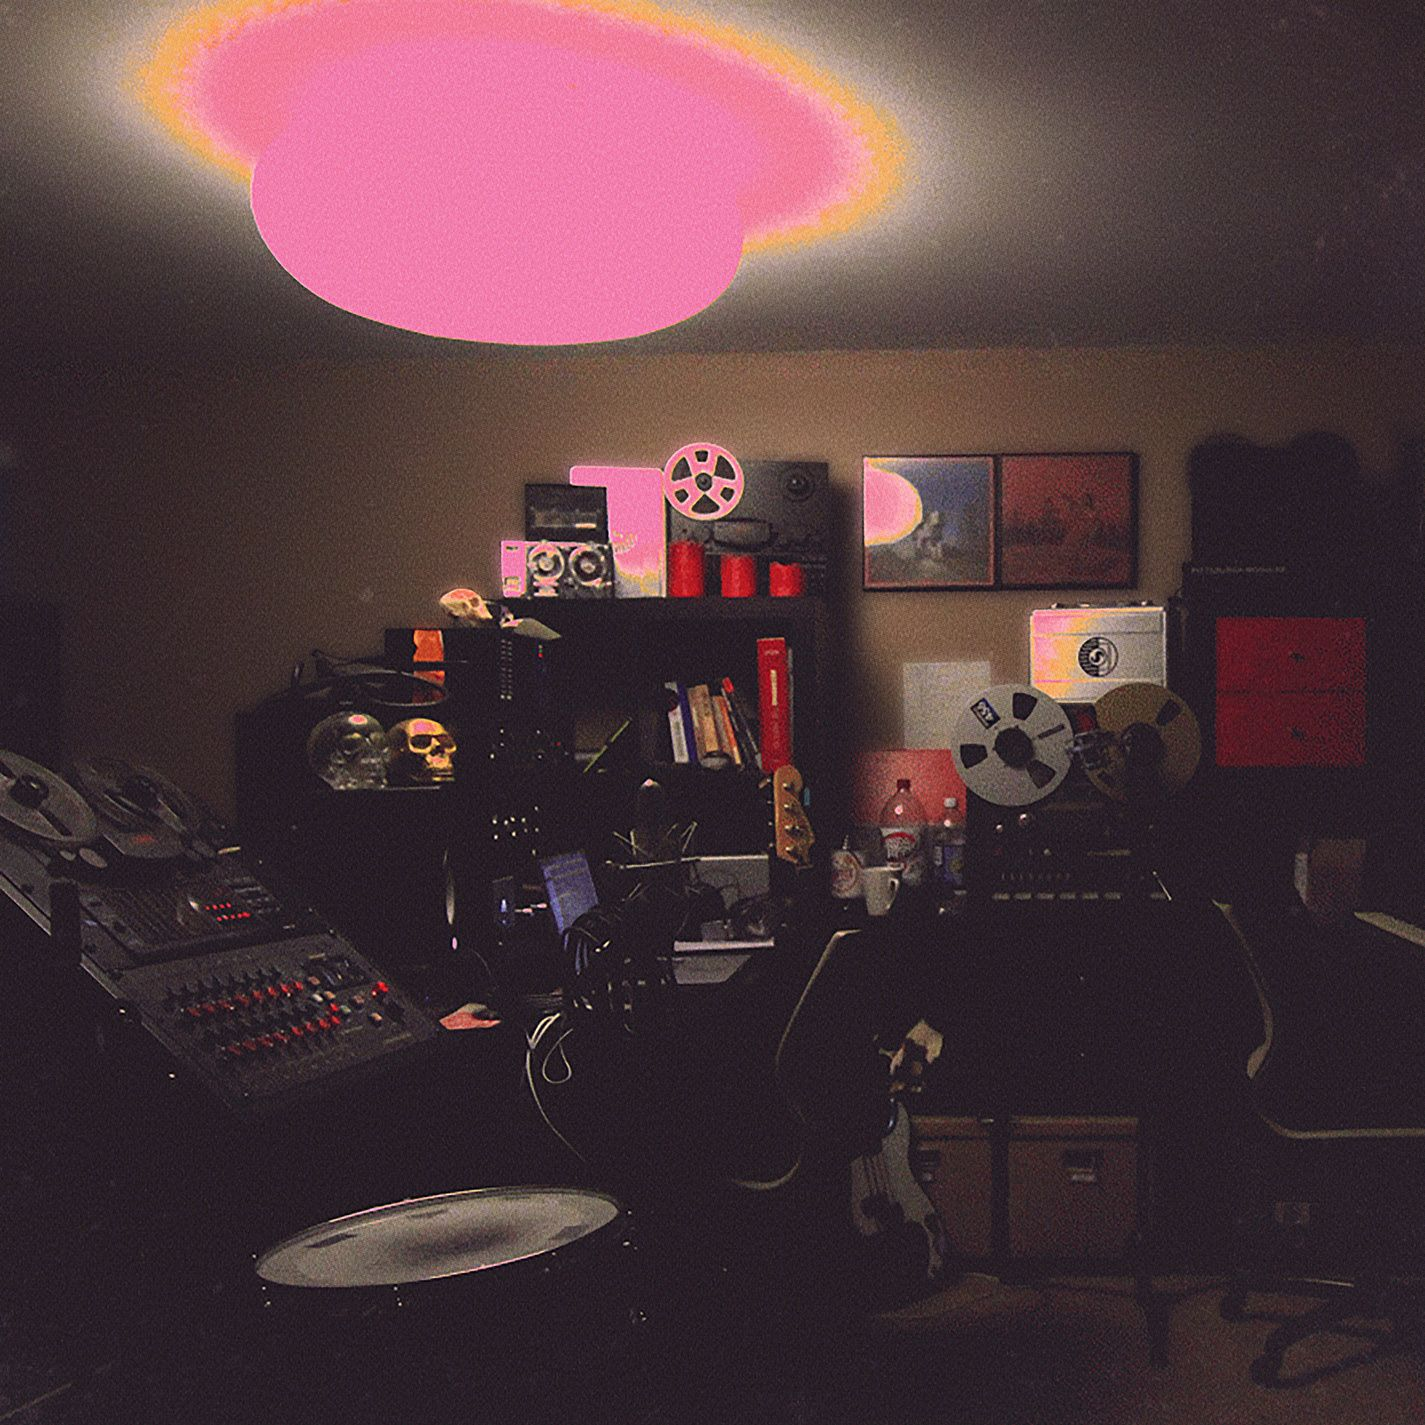 Unknown Mortal Orchestra - Multi-Love (2015) - this is like a true eargasm! So rich, so sweet and funky and still the UMO lo-fi sound is present <3 definitely the best album I've heard this year so far. I am happy to see that there are still some bands that try to create original, quality and melodic sounds <3